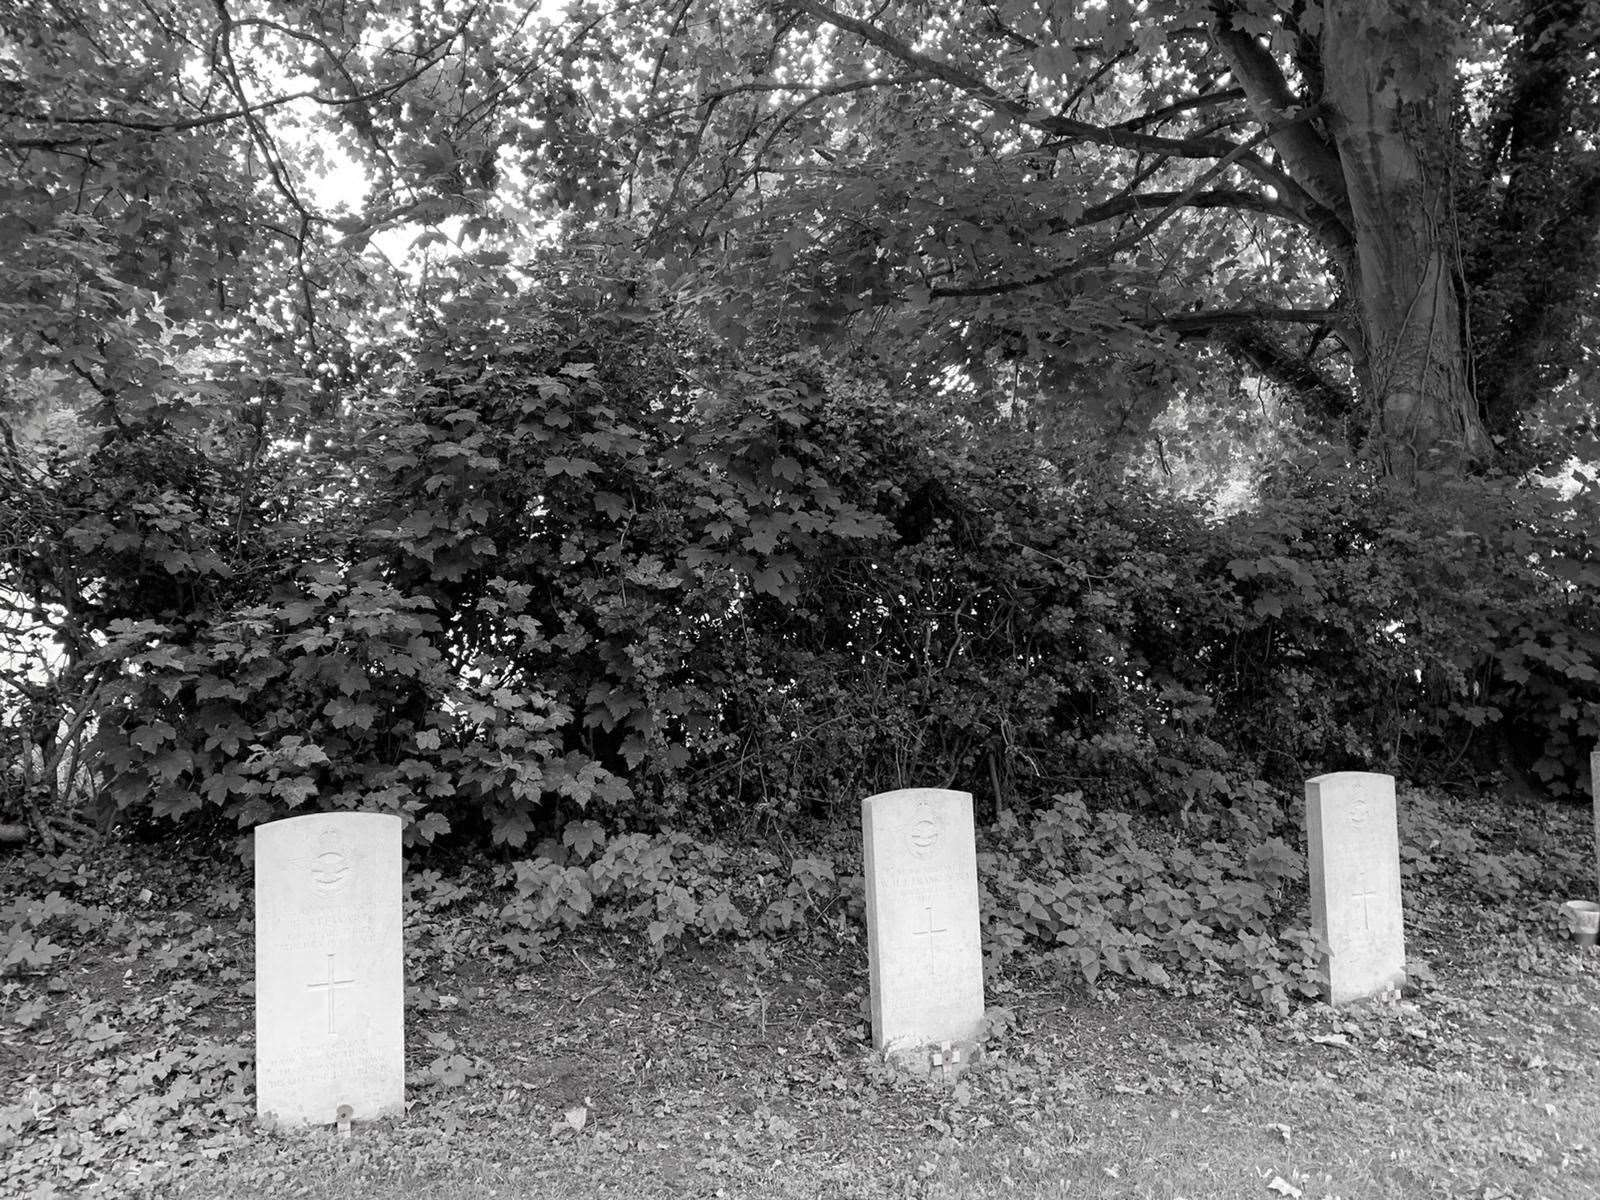 They shall not grow old - the headstones of the fallen three in St Peter's Churchyard, East Bridgford. (38857171)